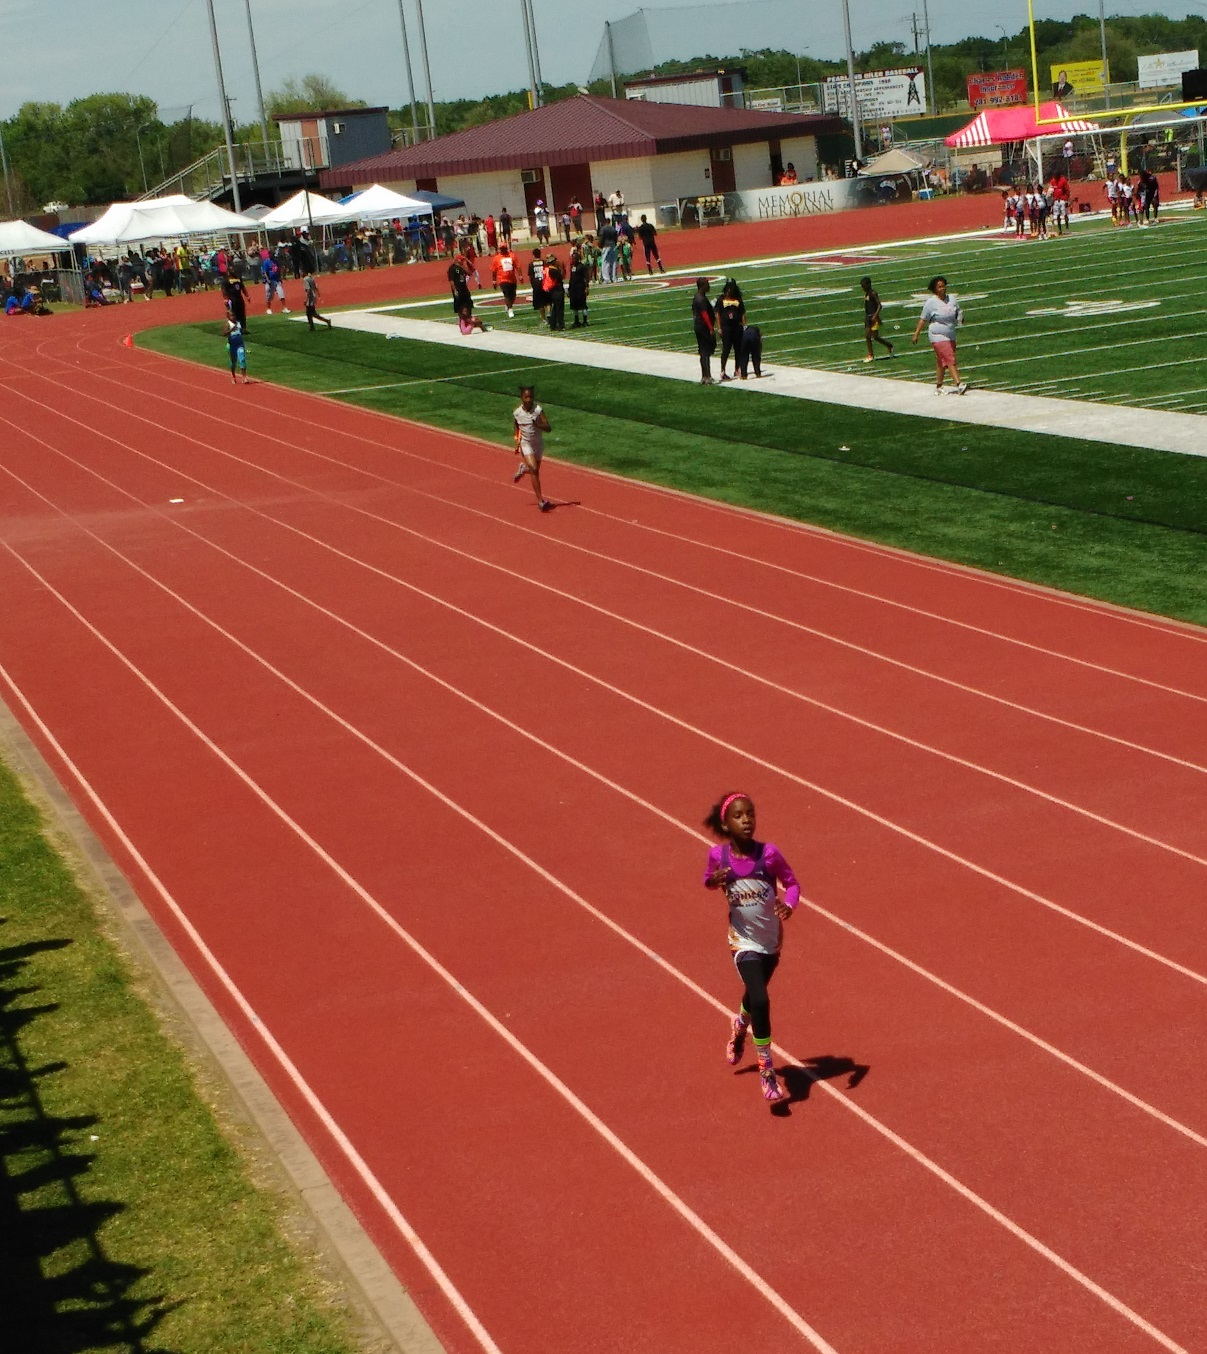 Tia running the 400